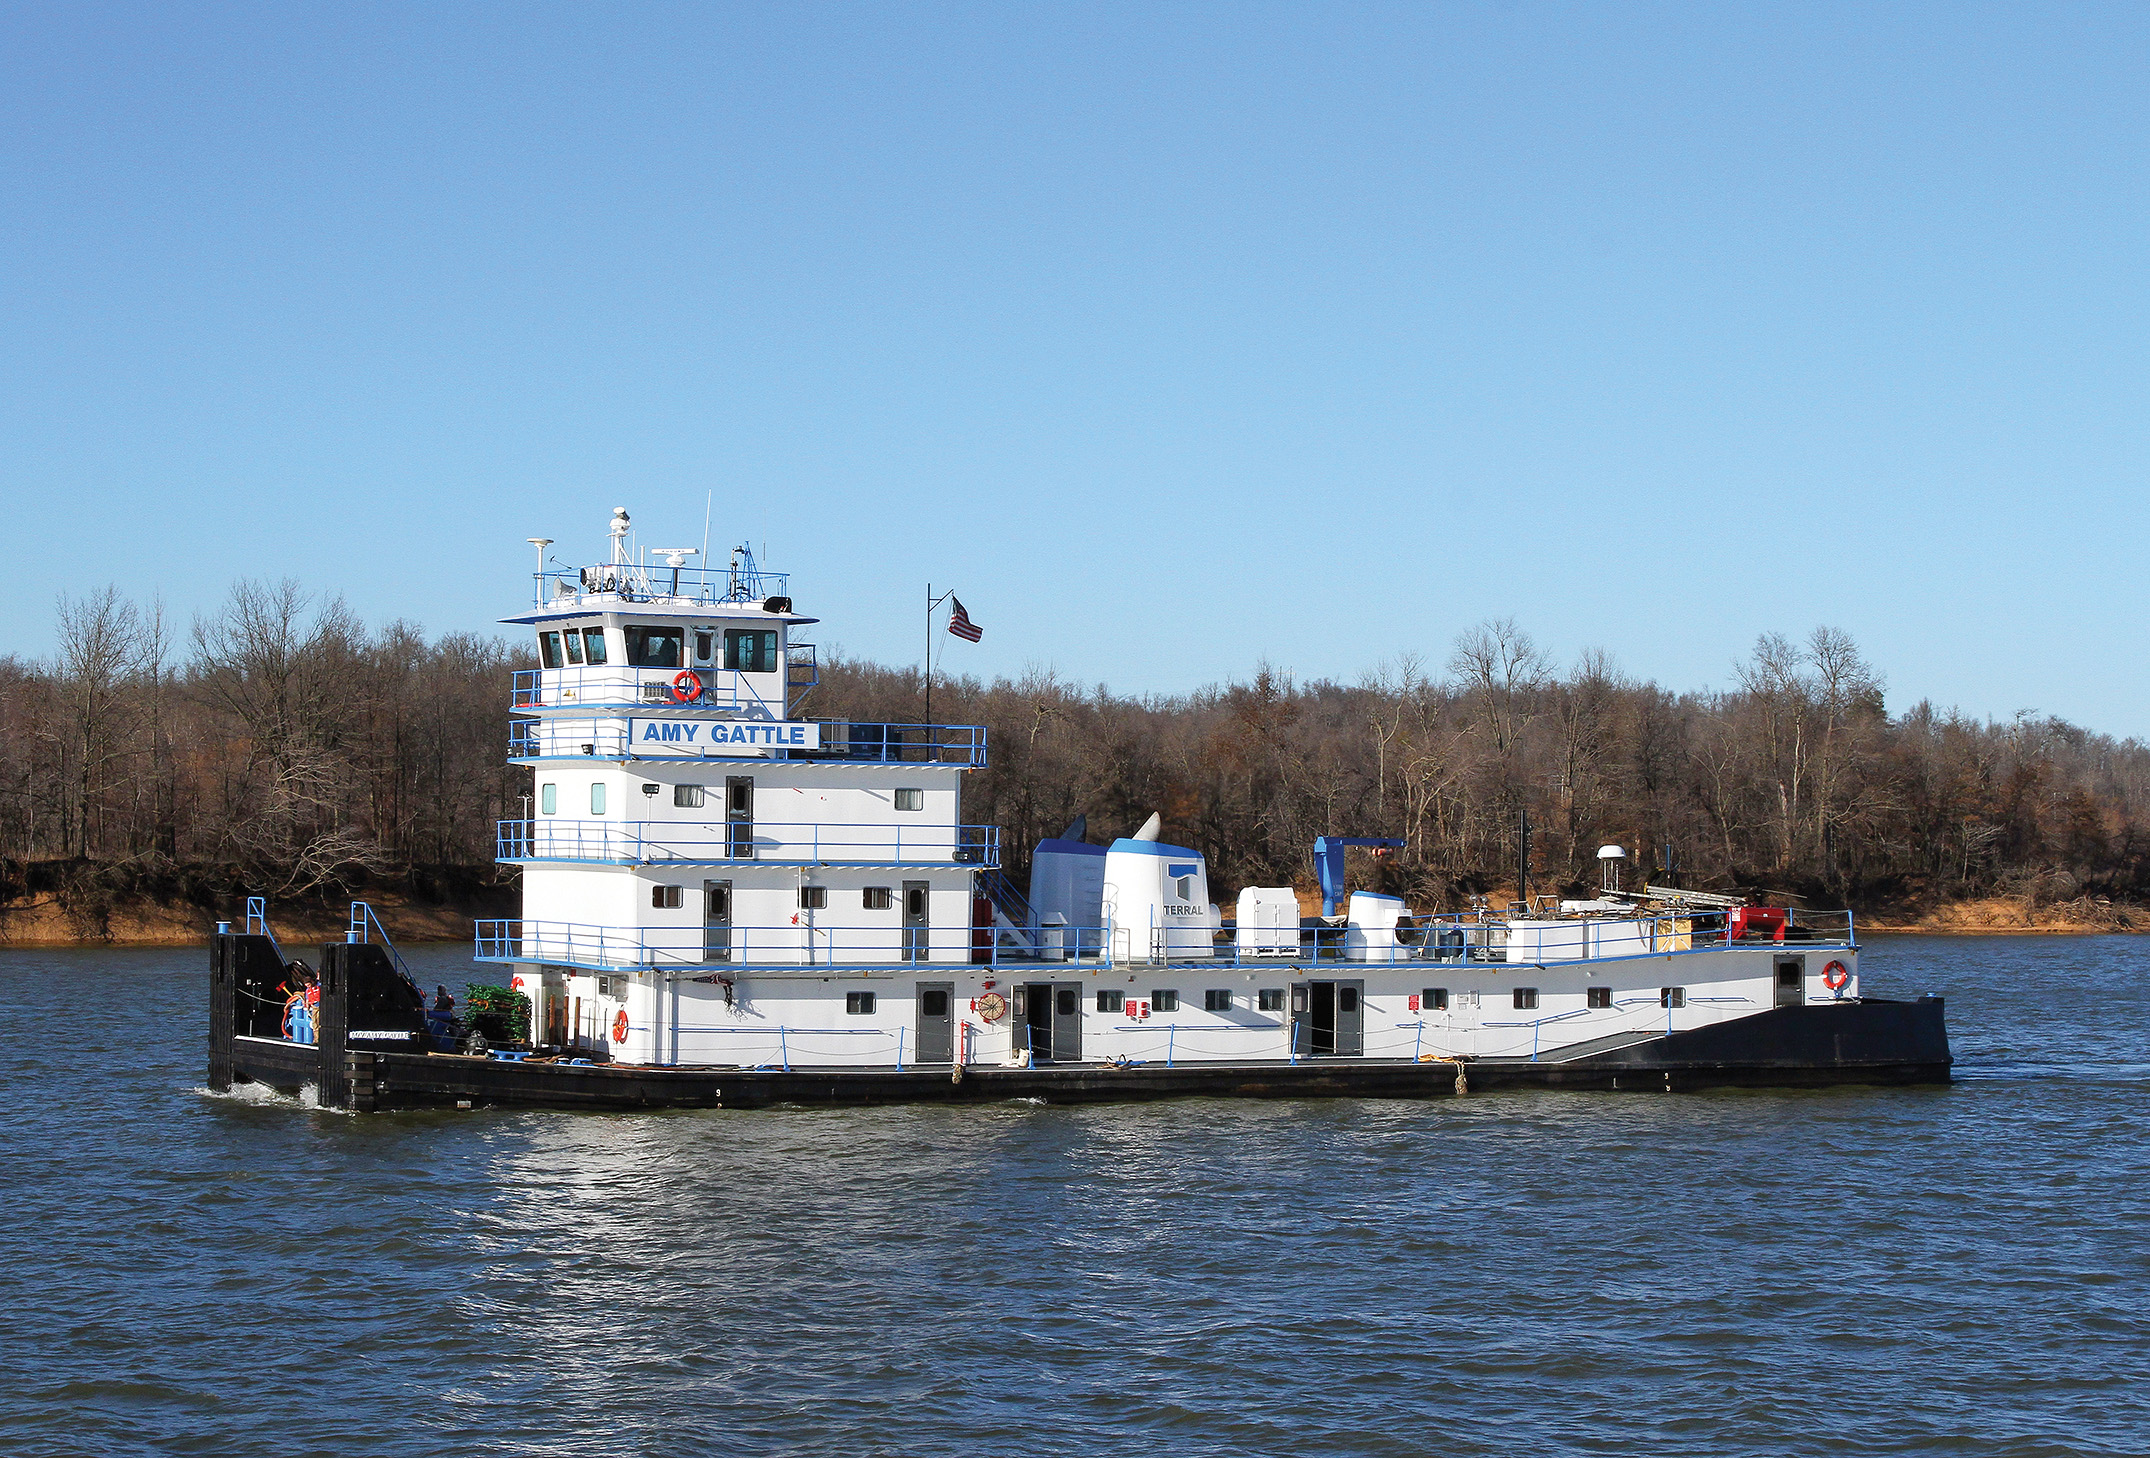 FIRST MARINE LLC REFURBS MV. AMY GATTLE